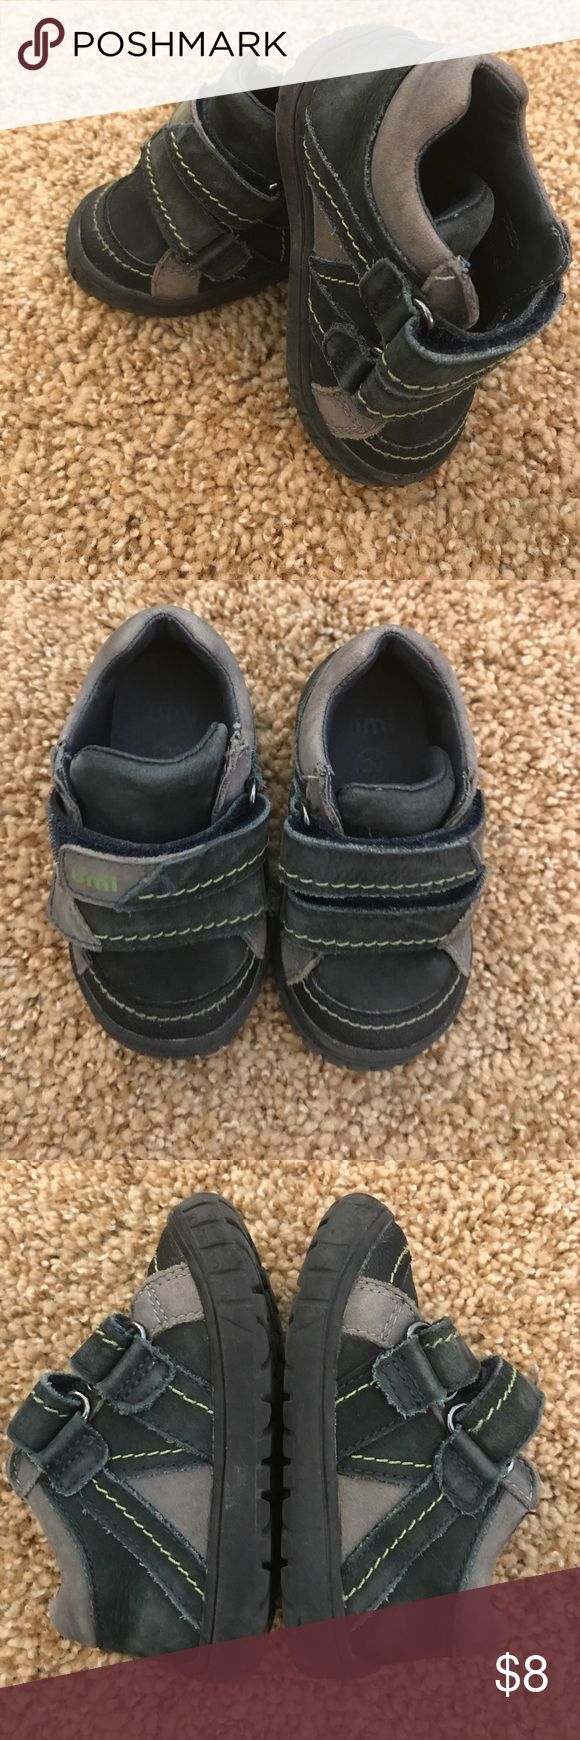 Umi Braden shoes. Boys size 5. Umi Braden shoes. Outside shows some superficial discoloring due to the material. However, the soles are in great condition. Lots of life left in these. I've priced the shoes taking that into consideration. Pet and smoke free home. Five star rating. Top 10 % seller. Umi Shoes Baby & Walker